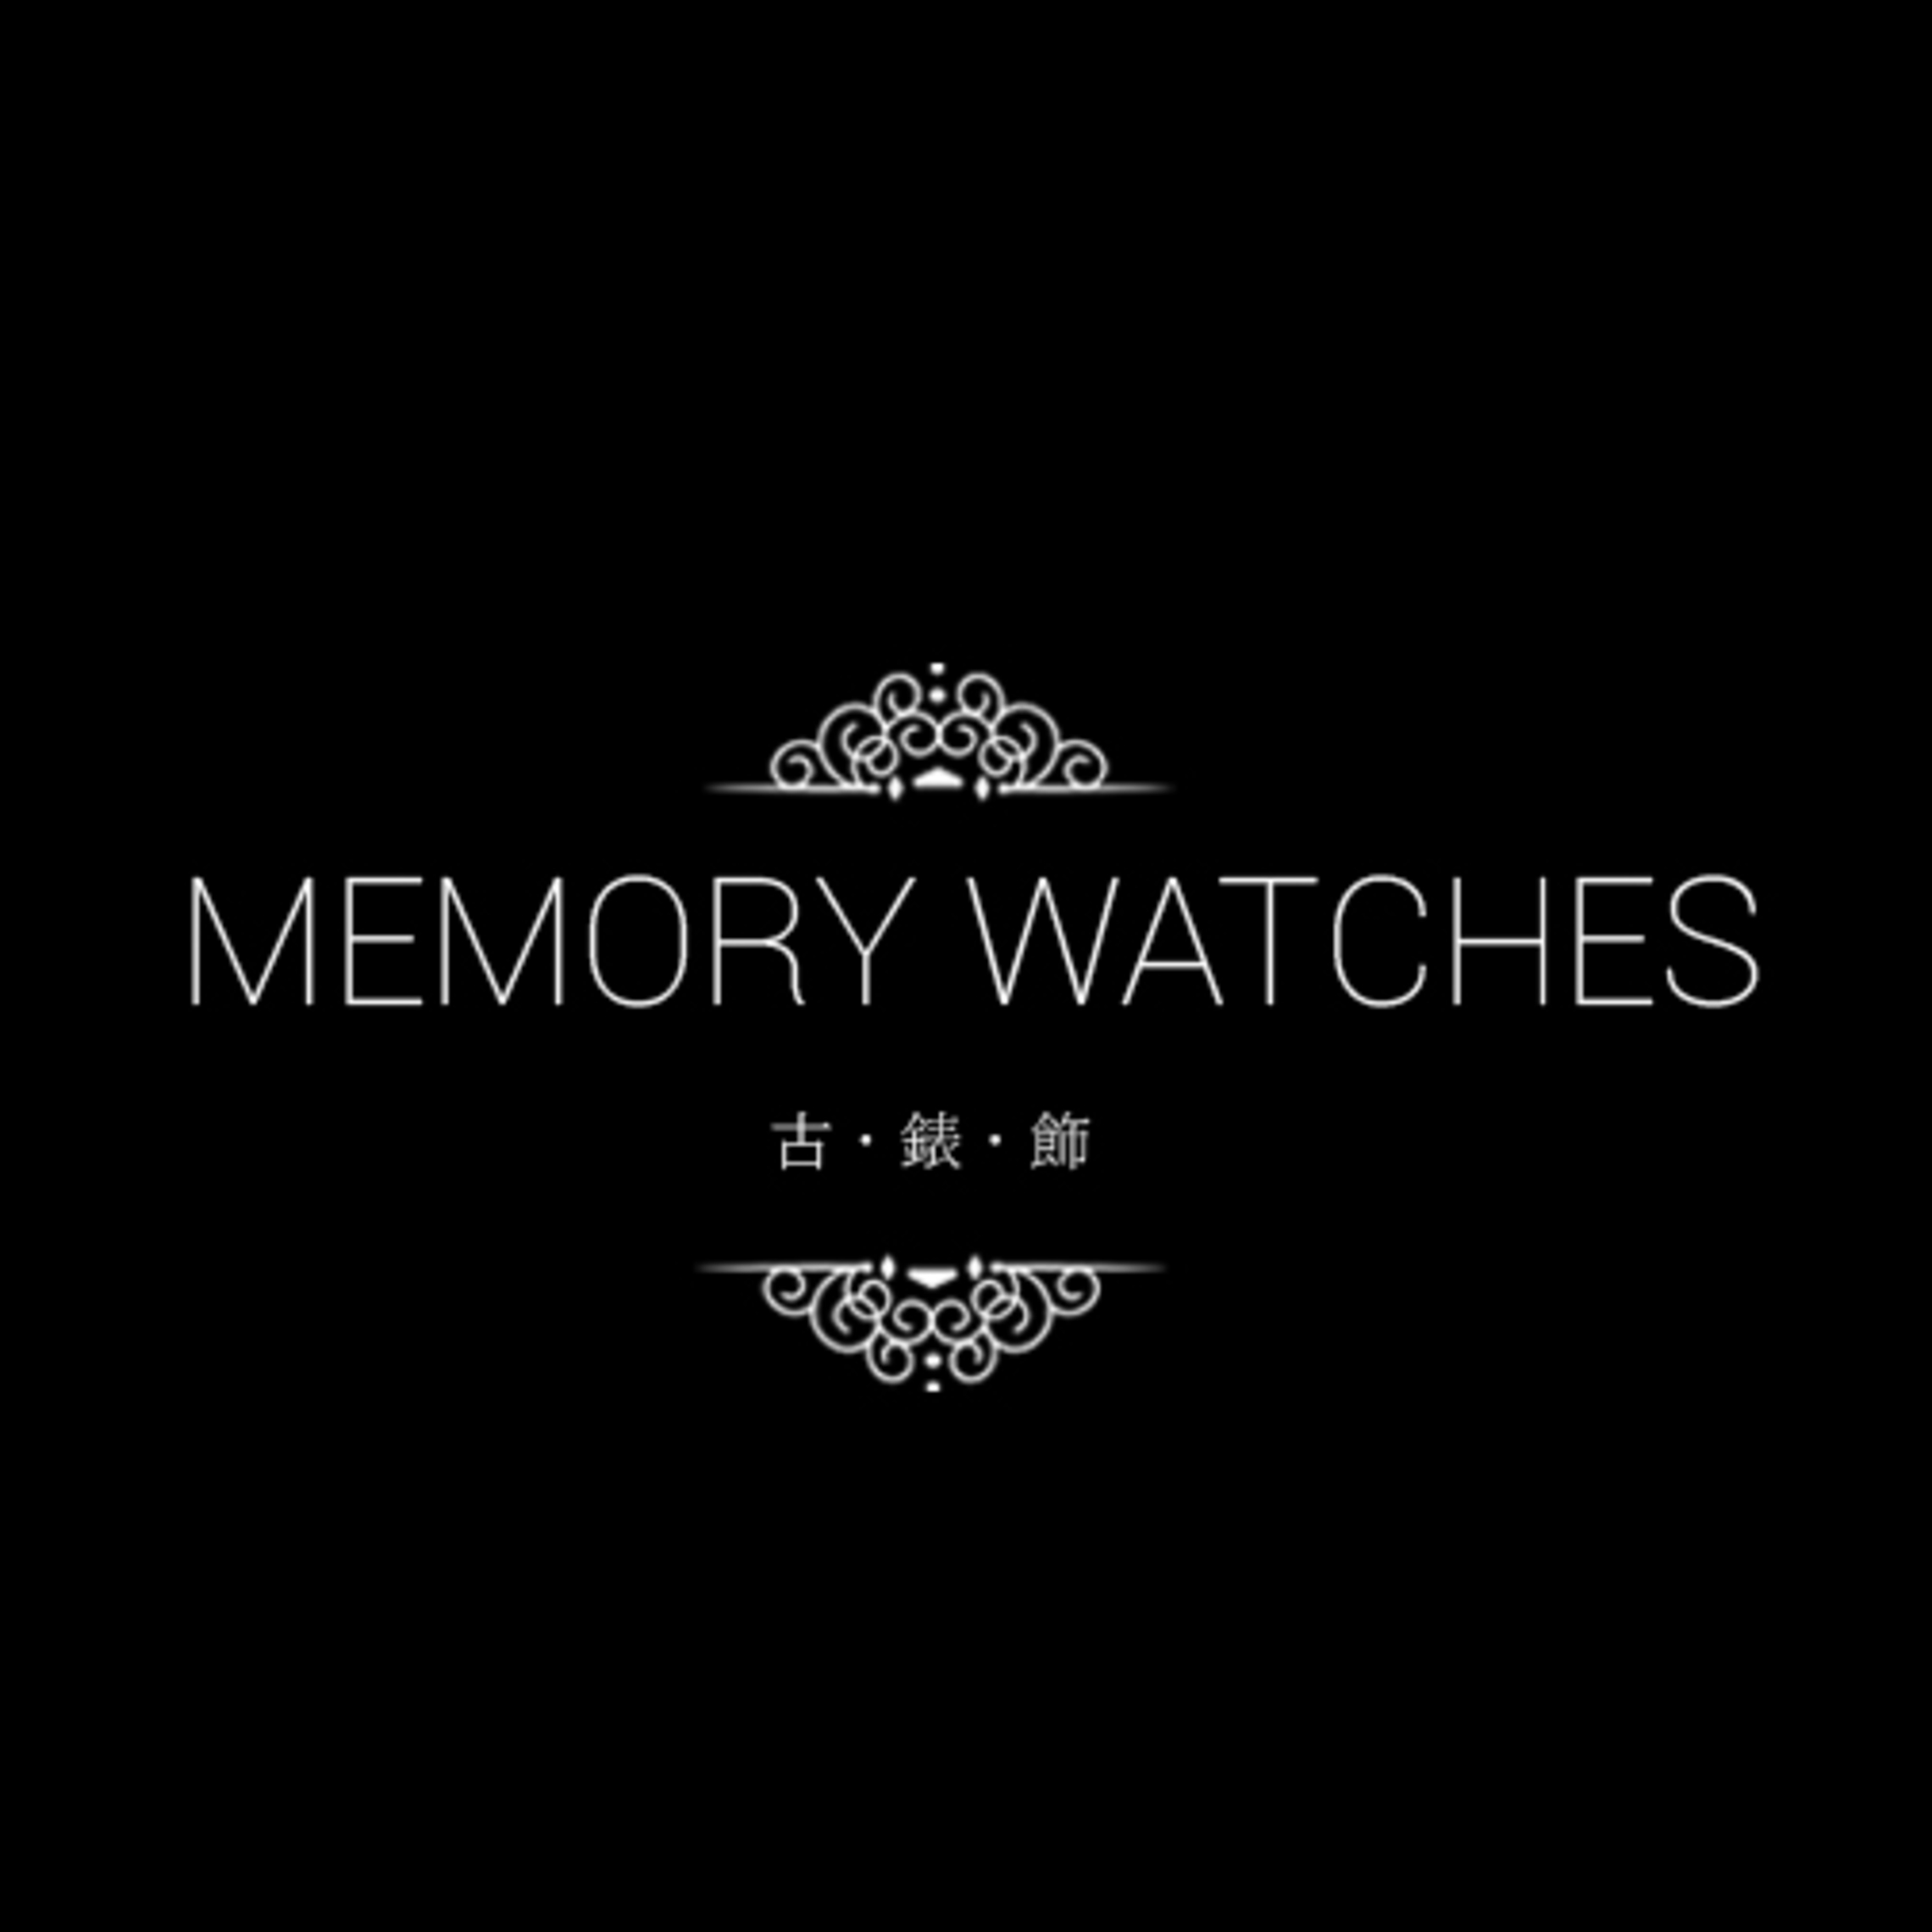 memory watch and- company logo